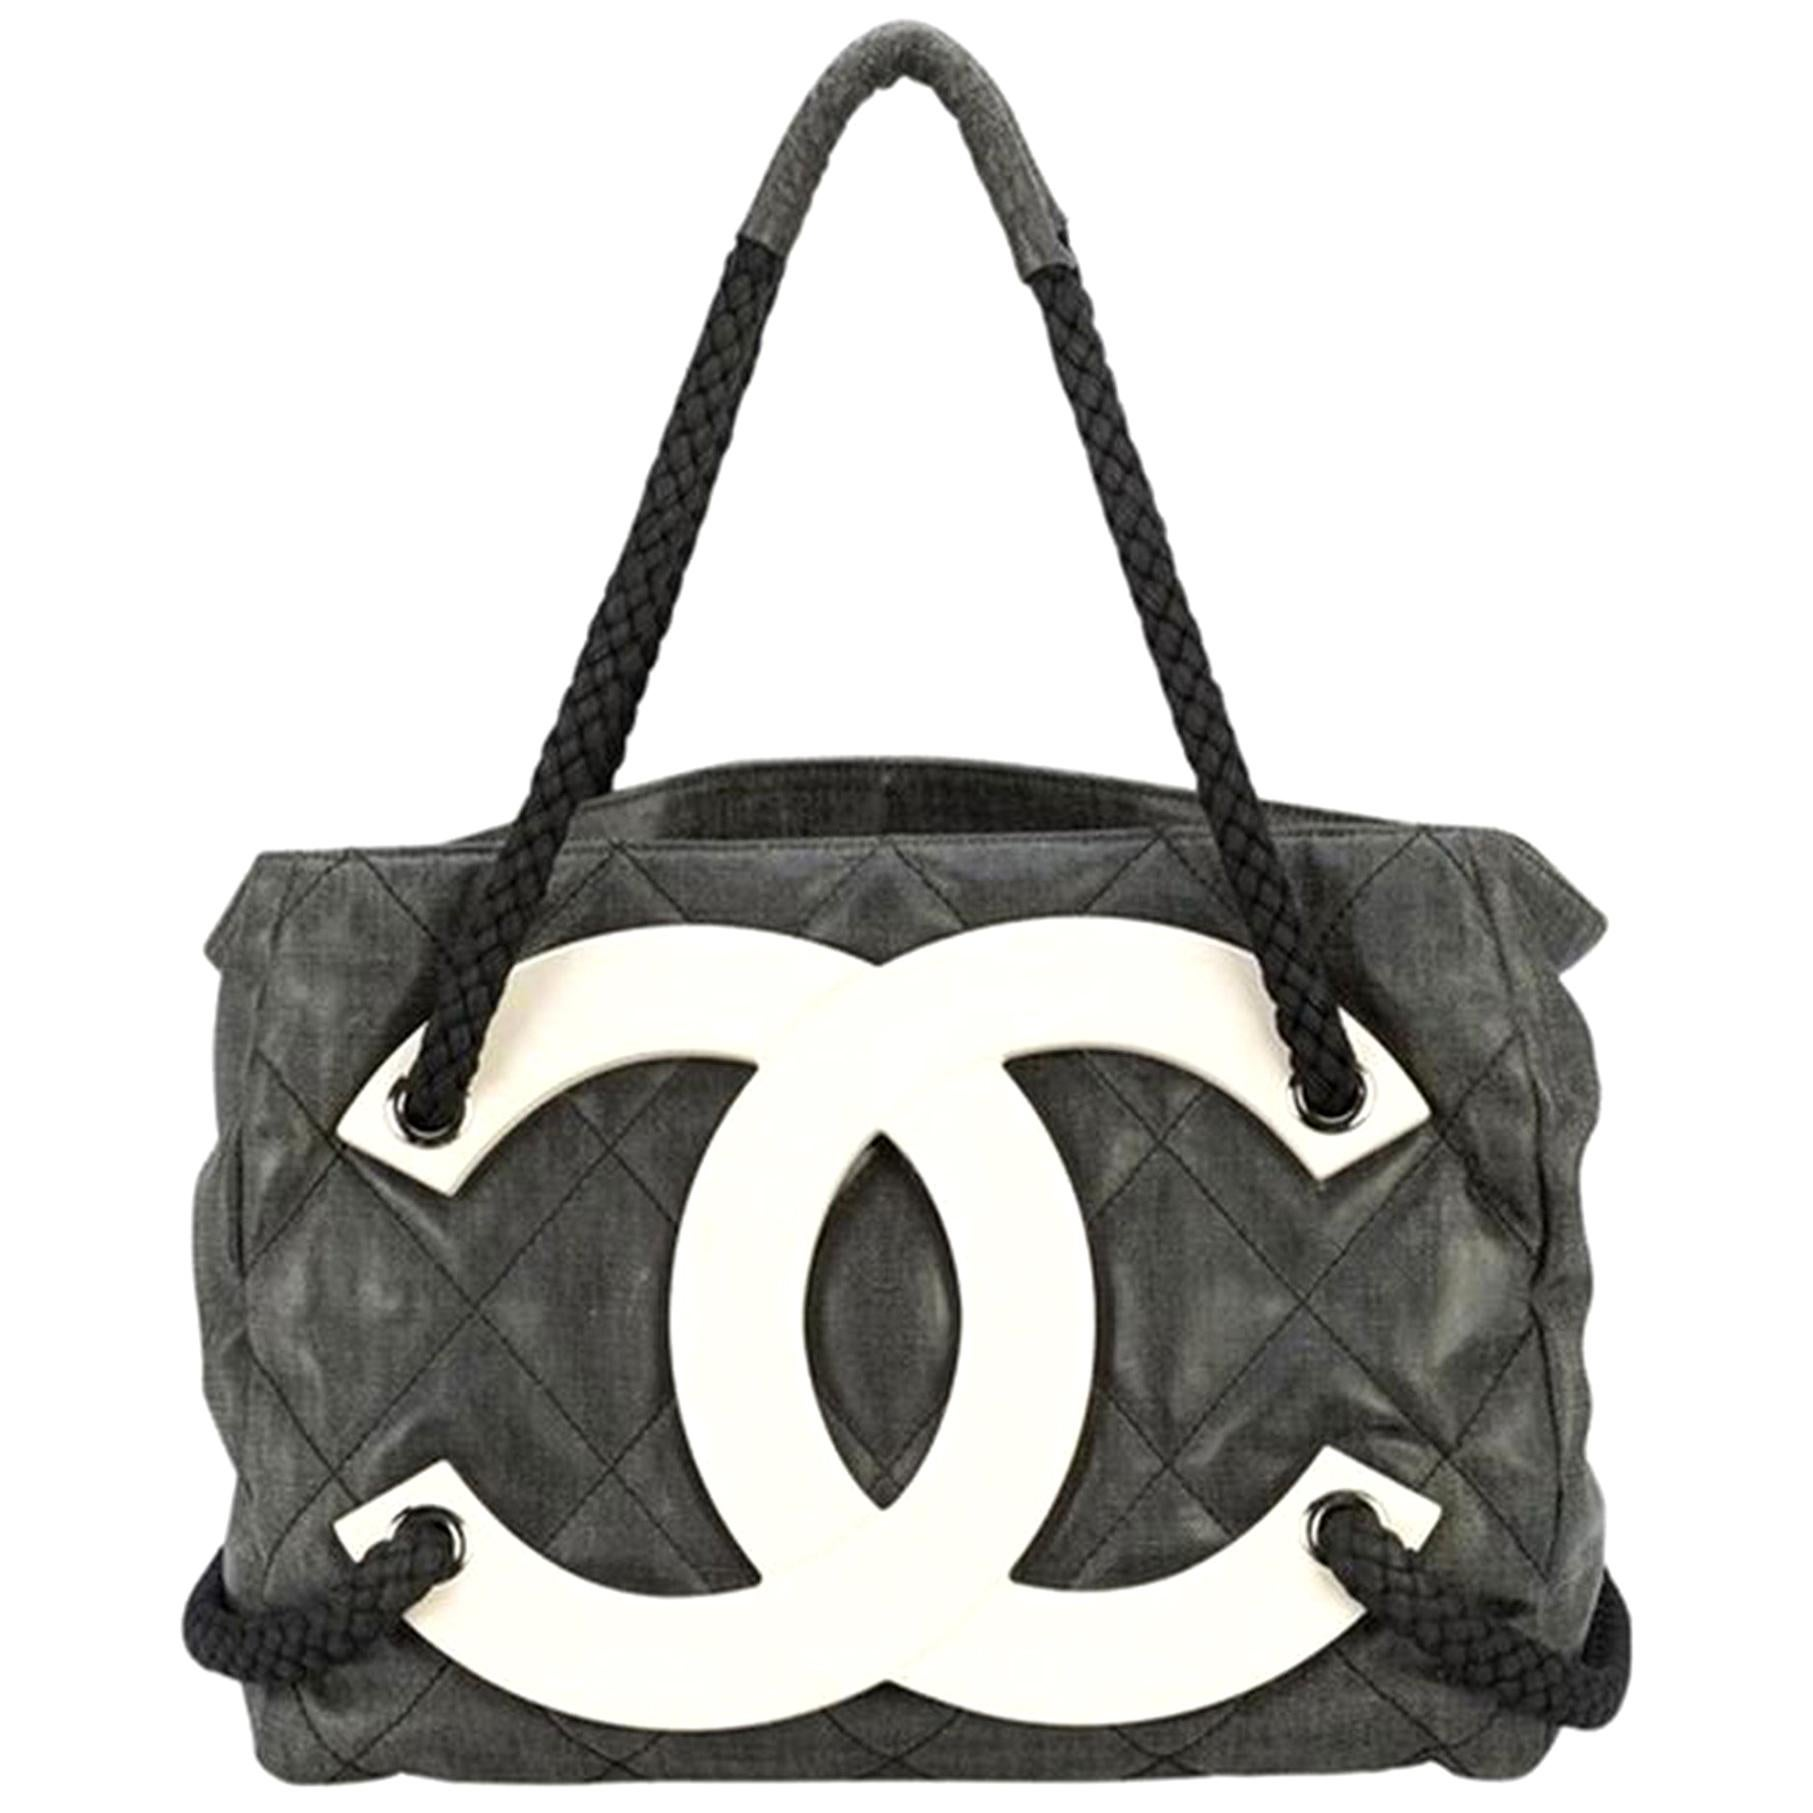 Chanel Rare Limited Edition Cruise Yacht Nautical Beach Black Coated Canvas Tote